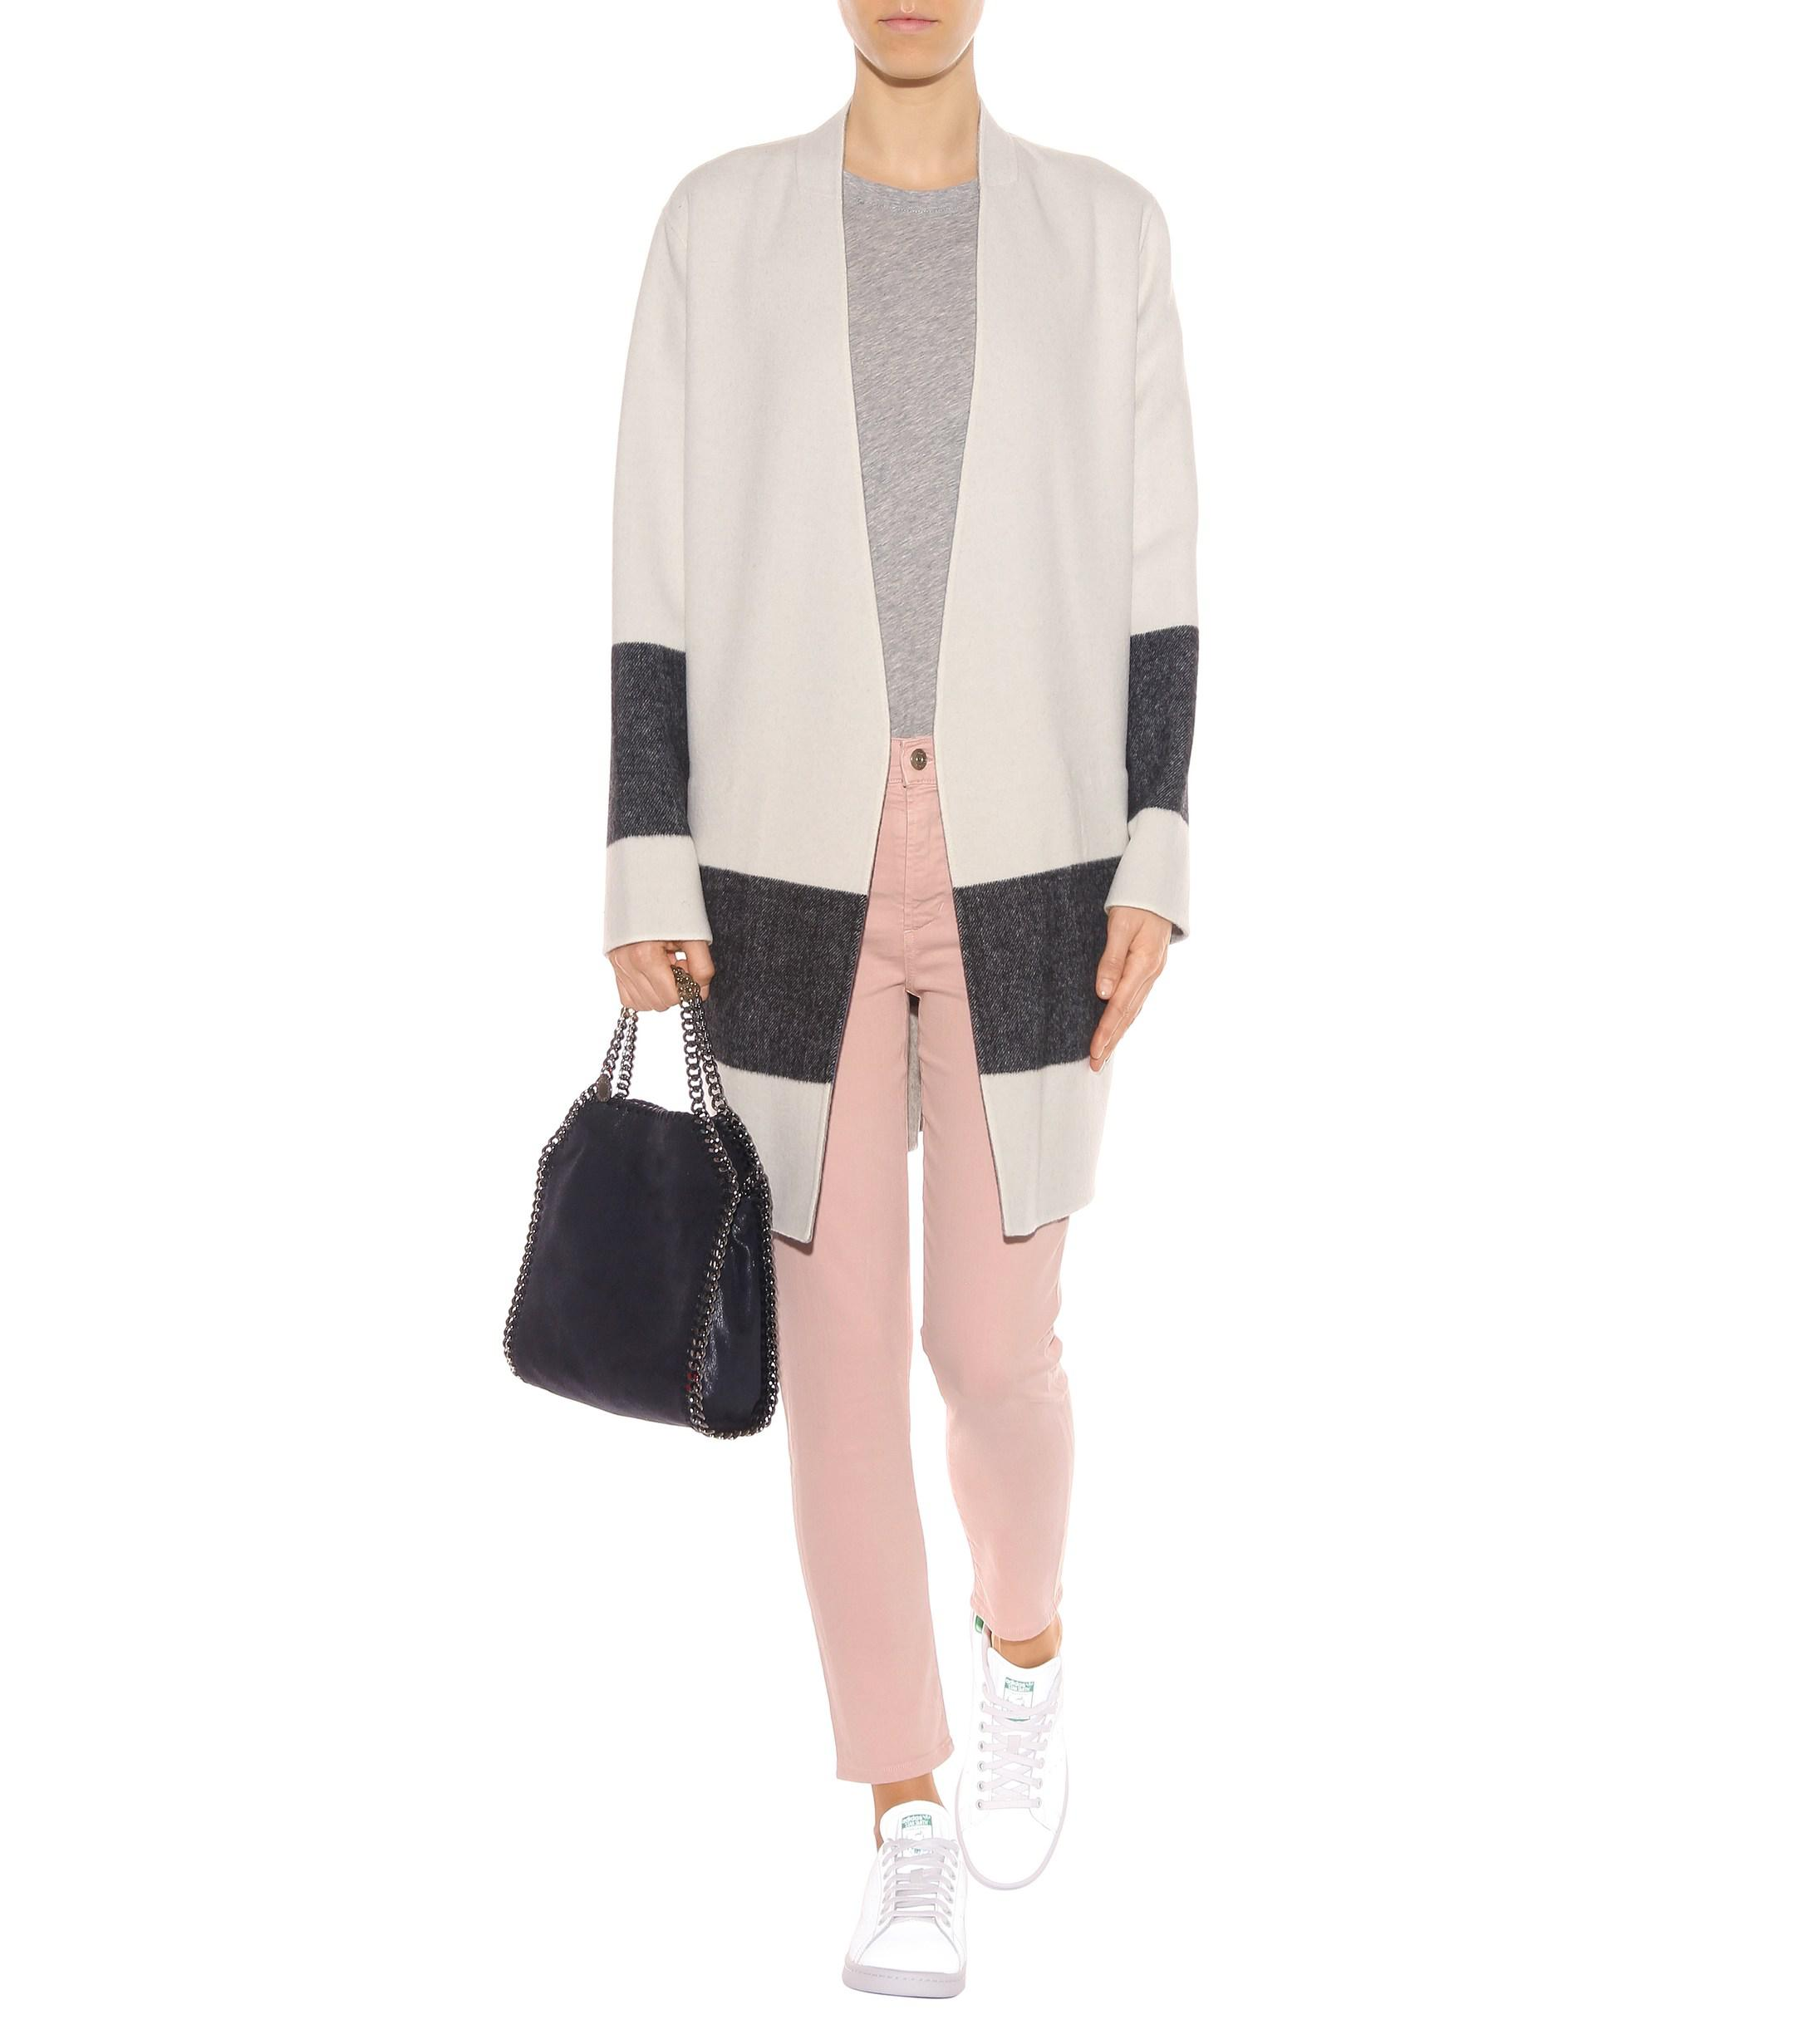 Citizens of Humanity Denim Rocket Crop High-rise Skinny Jeans in Pink